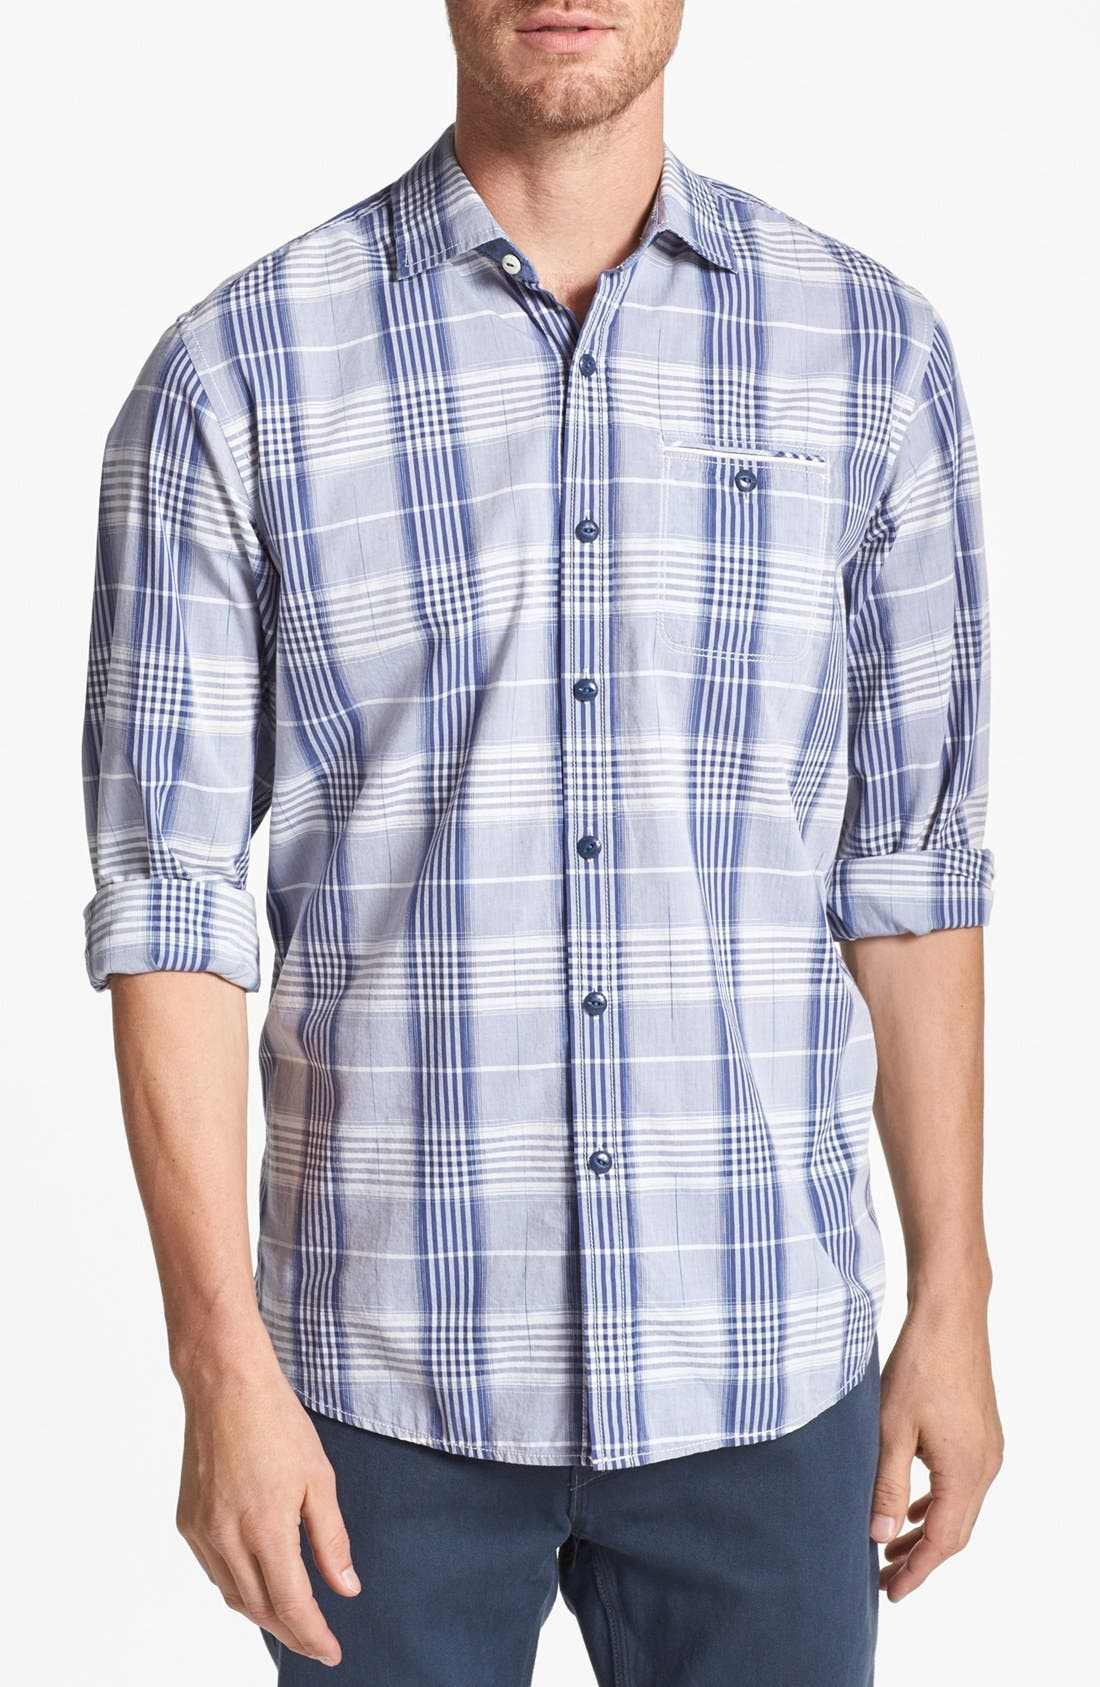 Alternate Image 1 Selected - Tommy Bahama Denim '1 Space and Time' Island Modern Fit Sport Shirt